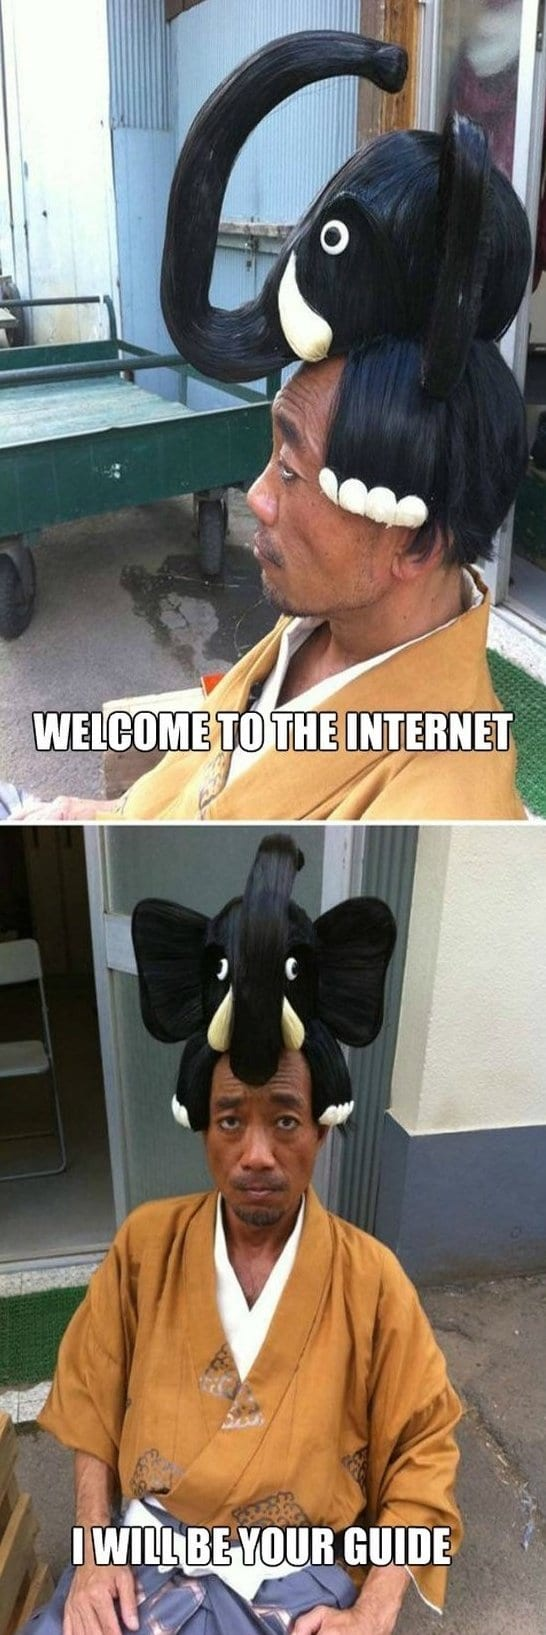 jokes-2014-welcome-to-the-internet